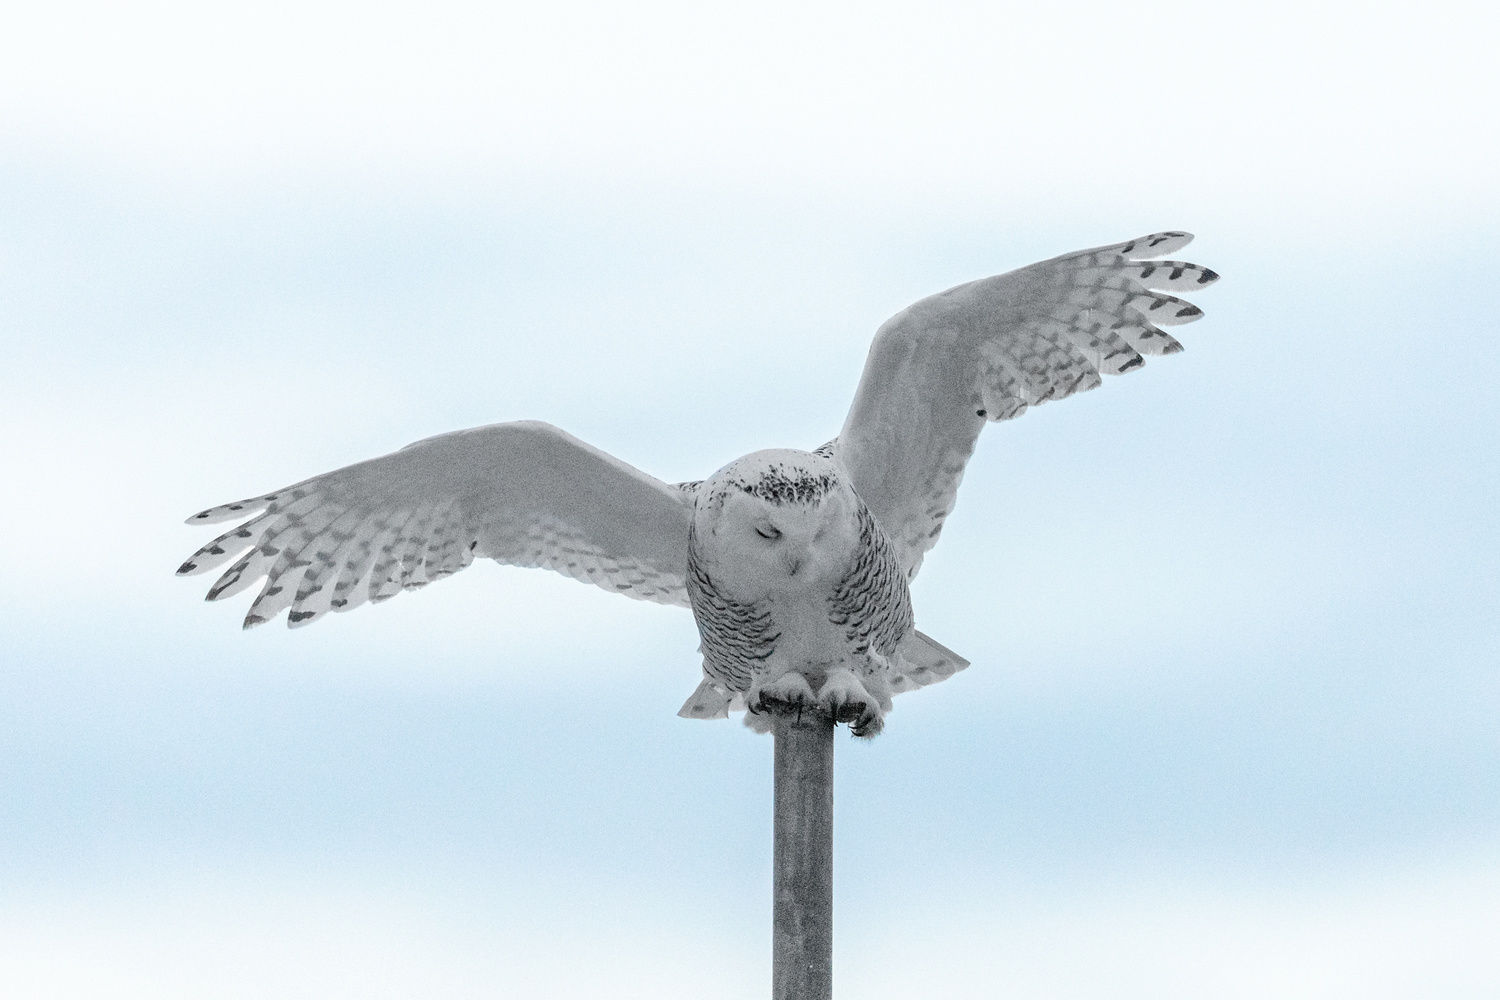 Snowy Owl by Kyle Rohlfing